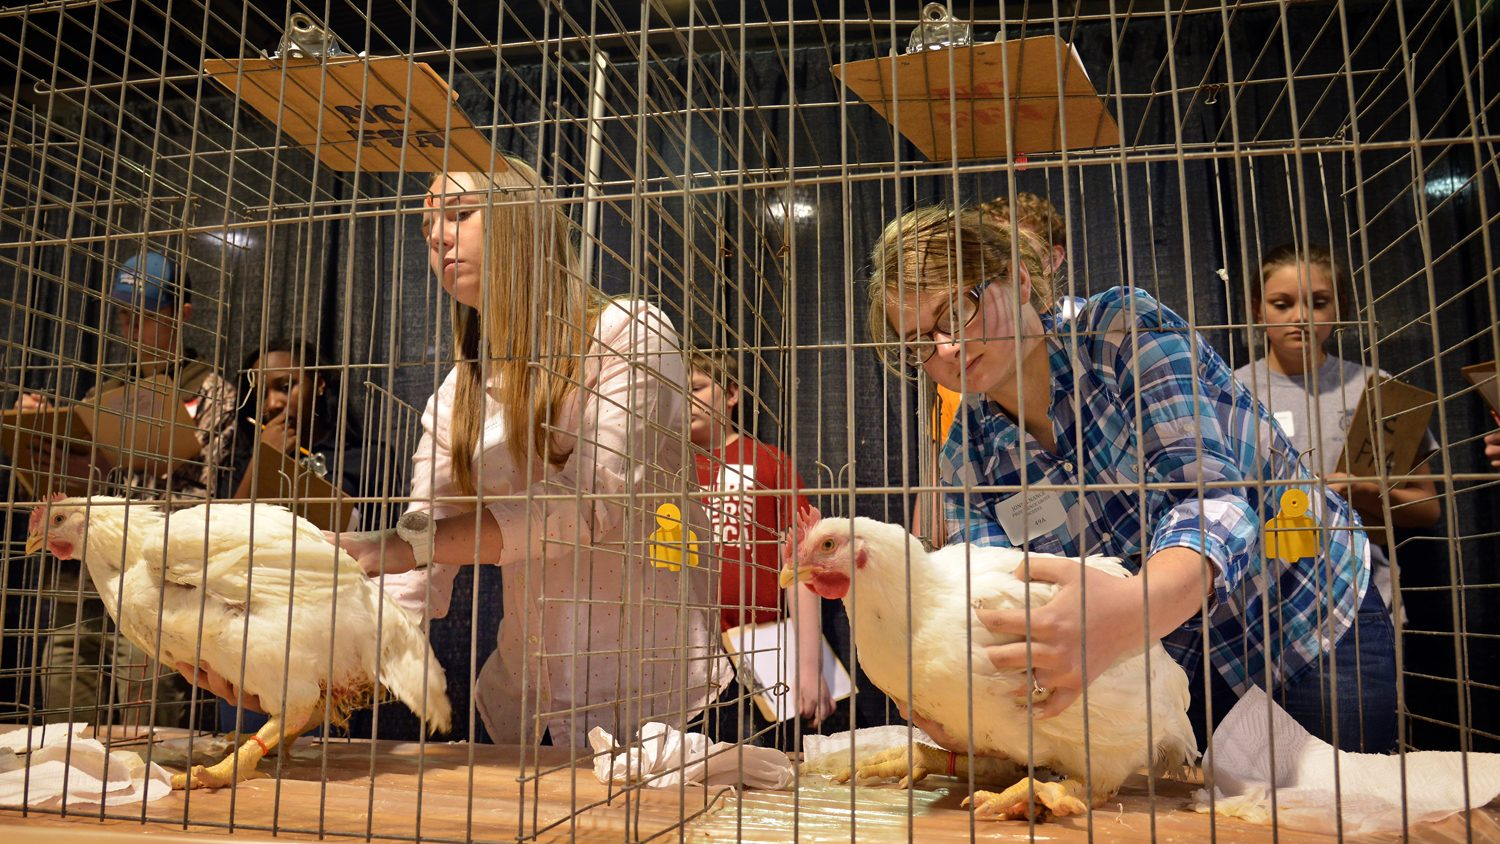 Youth participating in a poultry judging contest.